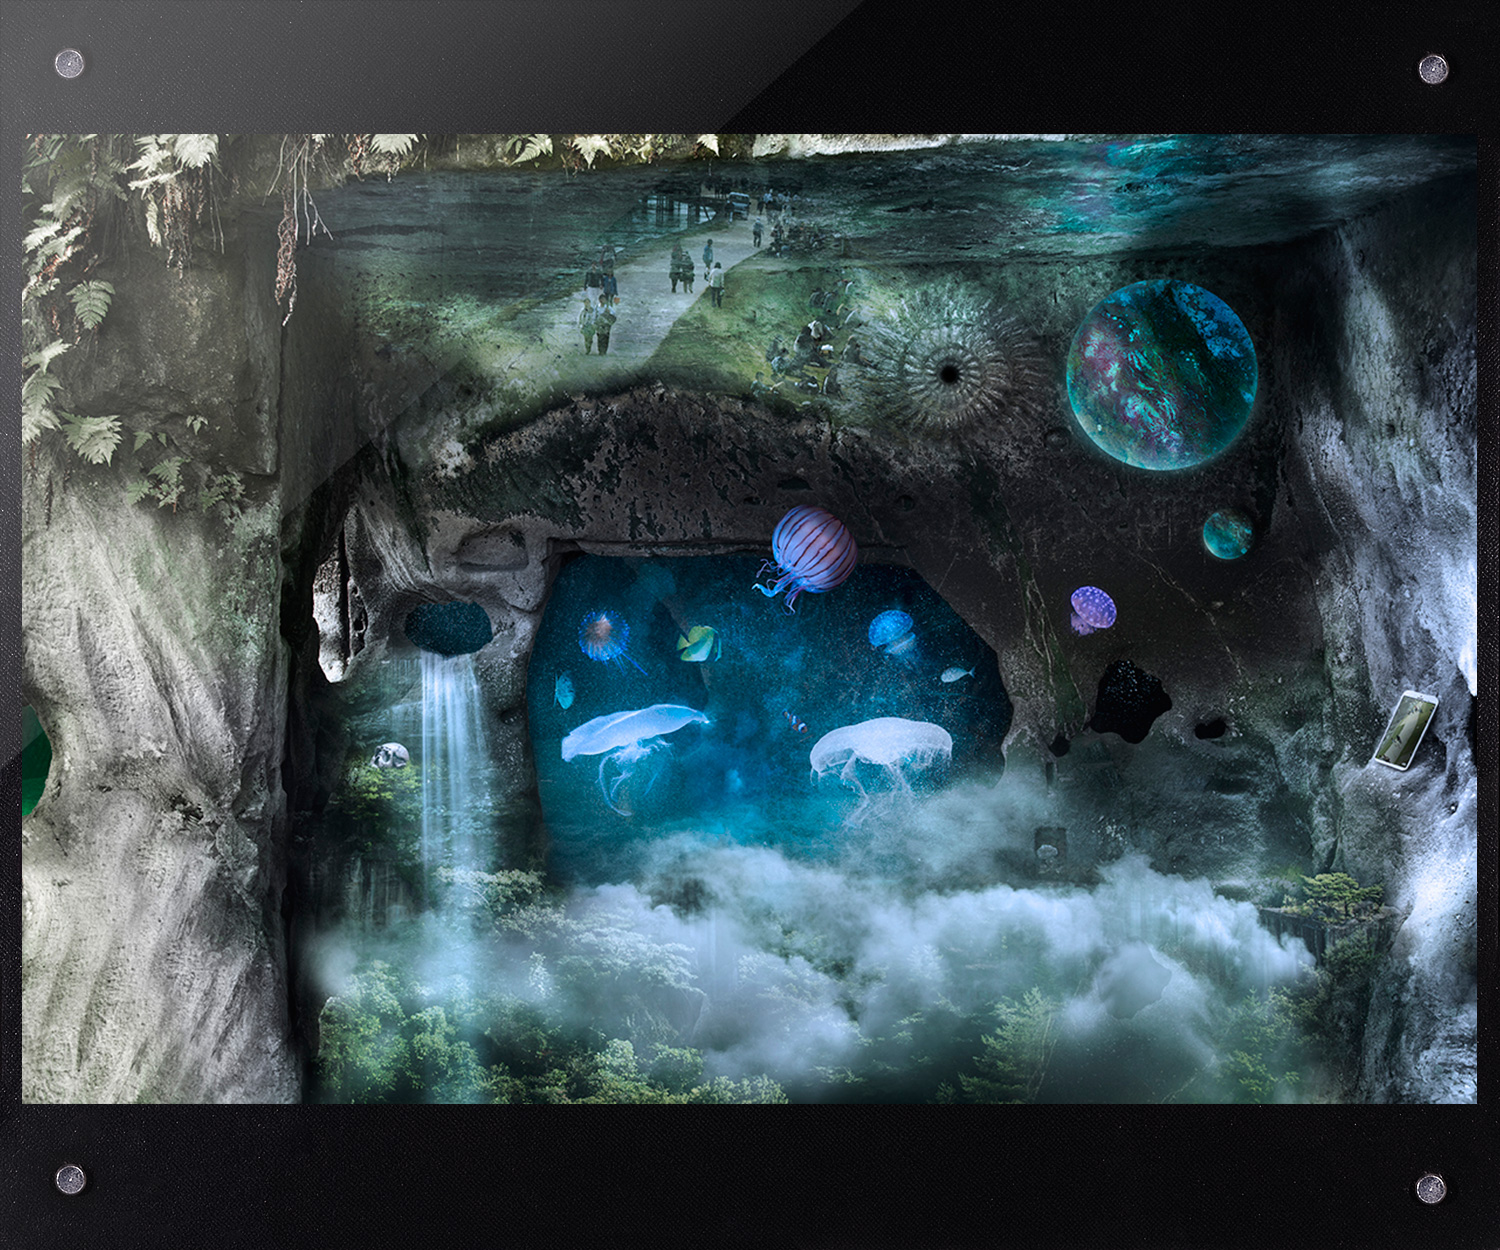 Singularity<br><small>Concept<br />Lost world, without humans.<br />Because of AI, we are history.<br />Wake up, We are being controlled by AI.<br /> ■2016年4月 ドイツ出展作品■<br>■2017年8月 International Art Book掲載■<br>■2017年10月 CONTEMPORARY Web掲載■